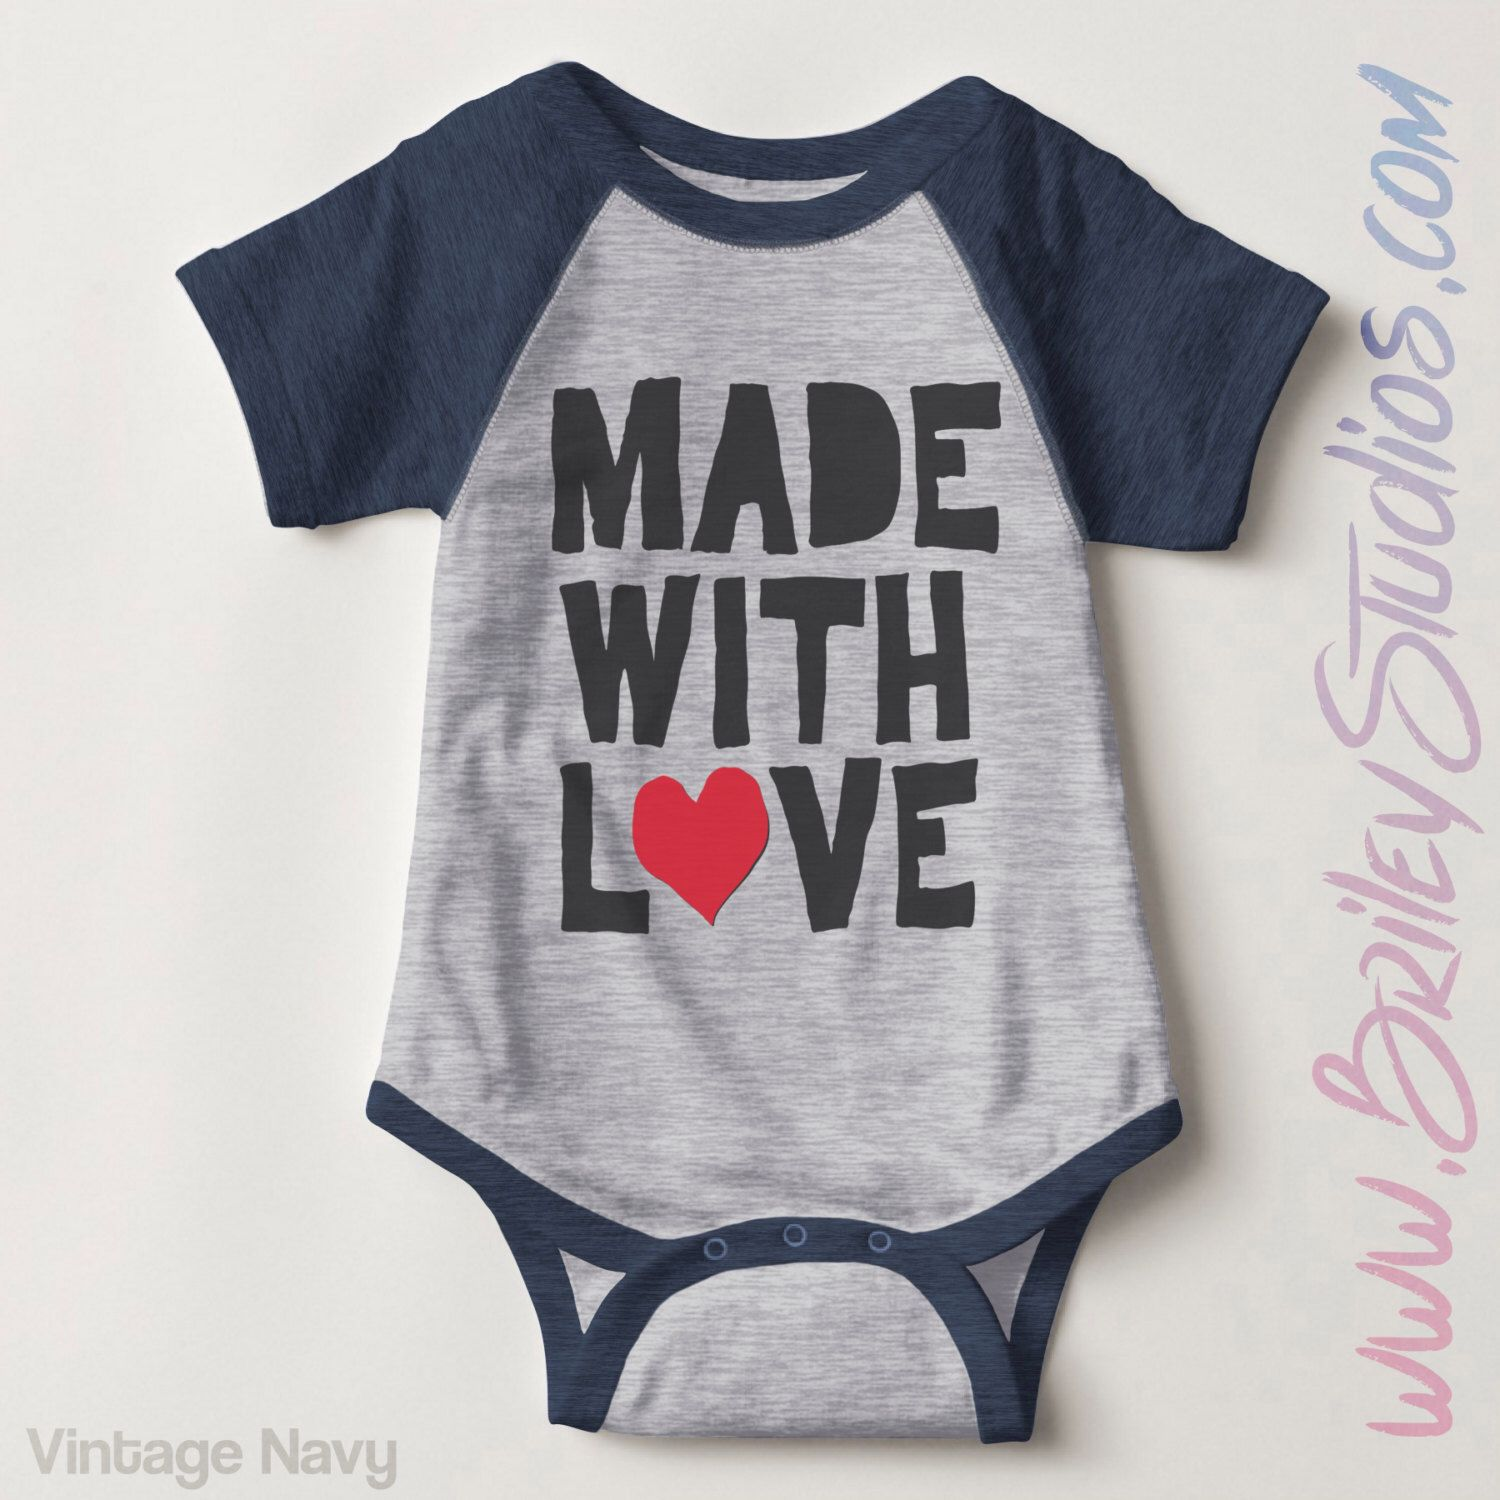 Made With Love Infant Baseball Newborn Baby Outfit Gender Neutral